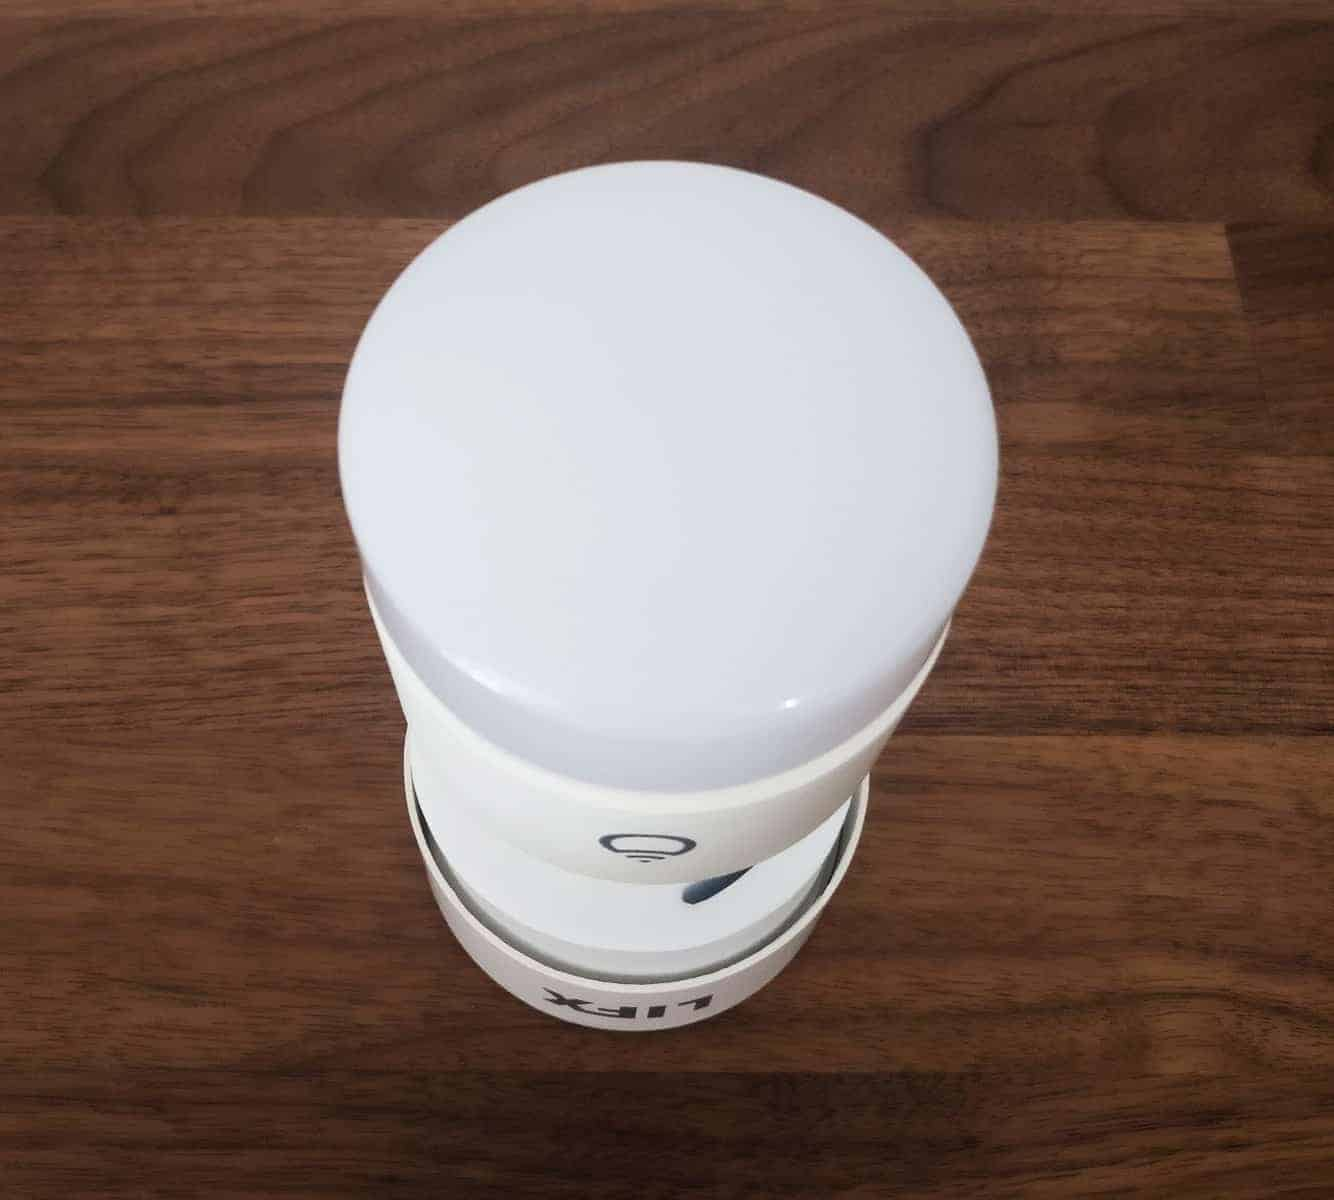 lifx-photos05 LIFX Smart Lightbulb and LIFX Z Review